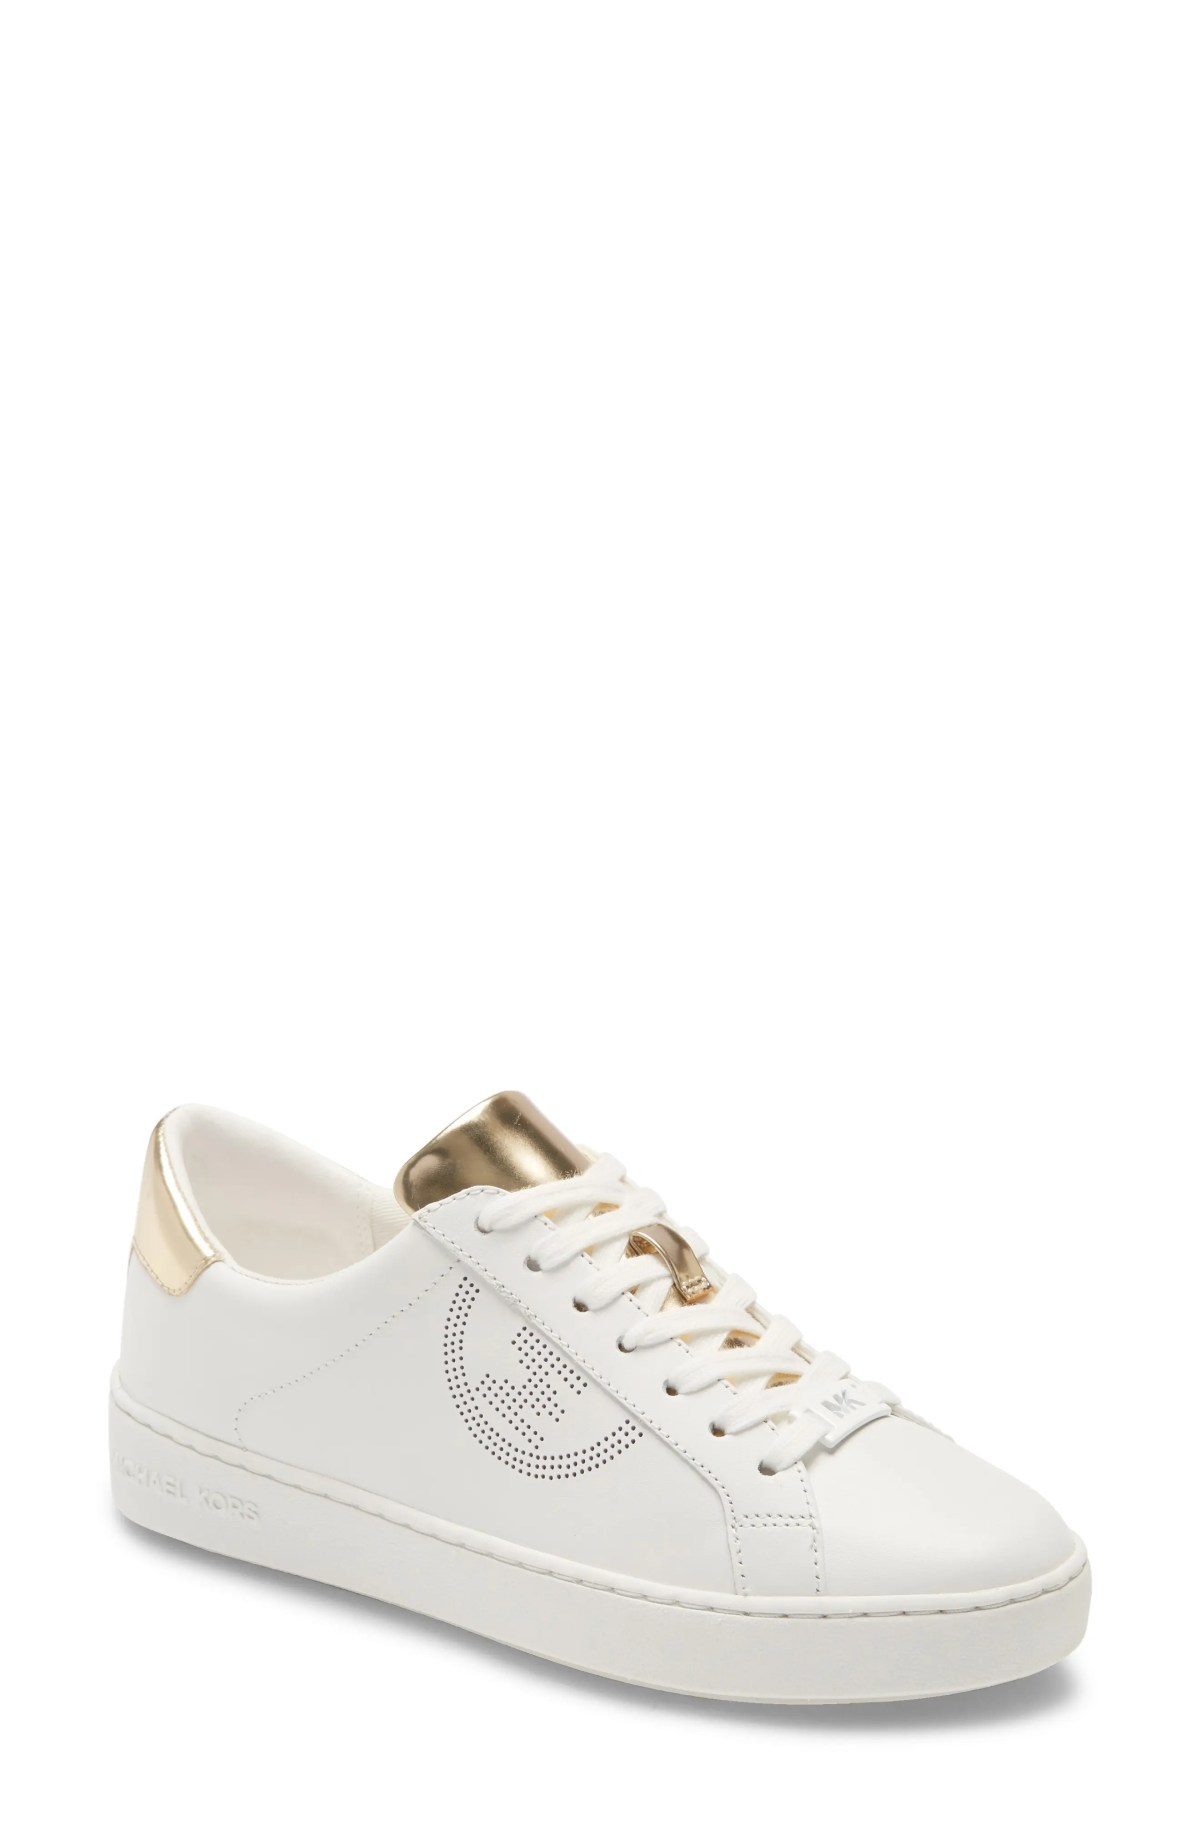 MICHAEL MICHAEL KORS 'Keaton' Sneaker, Main, color, WHITE/ GOLD LEATHER